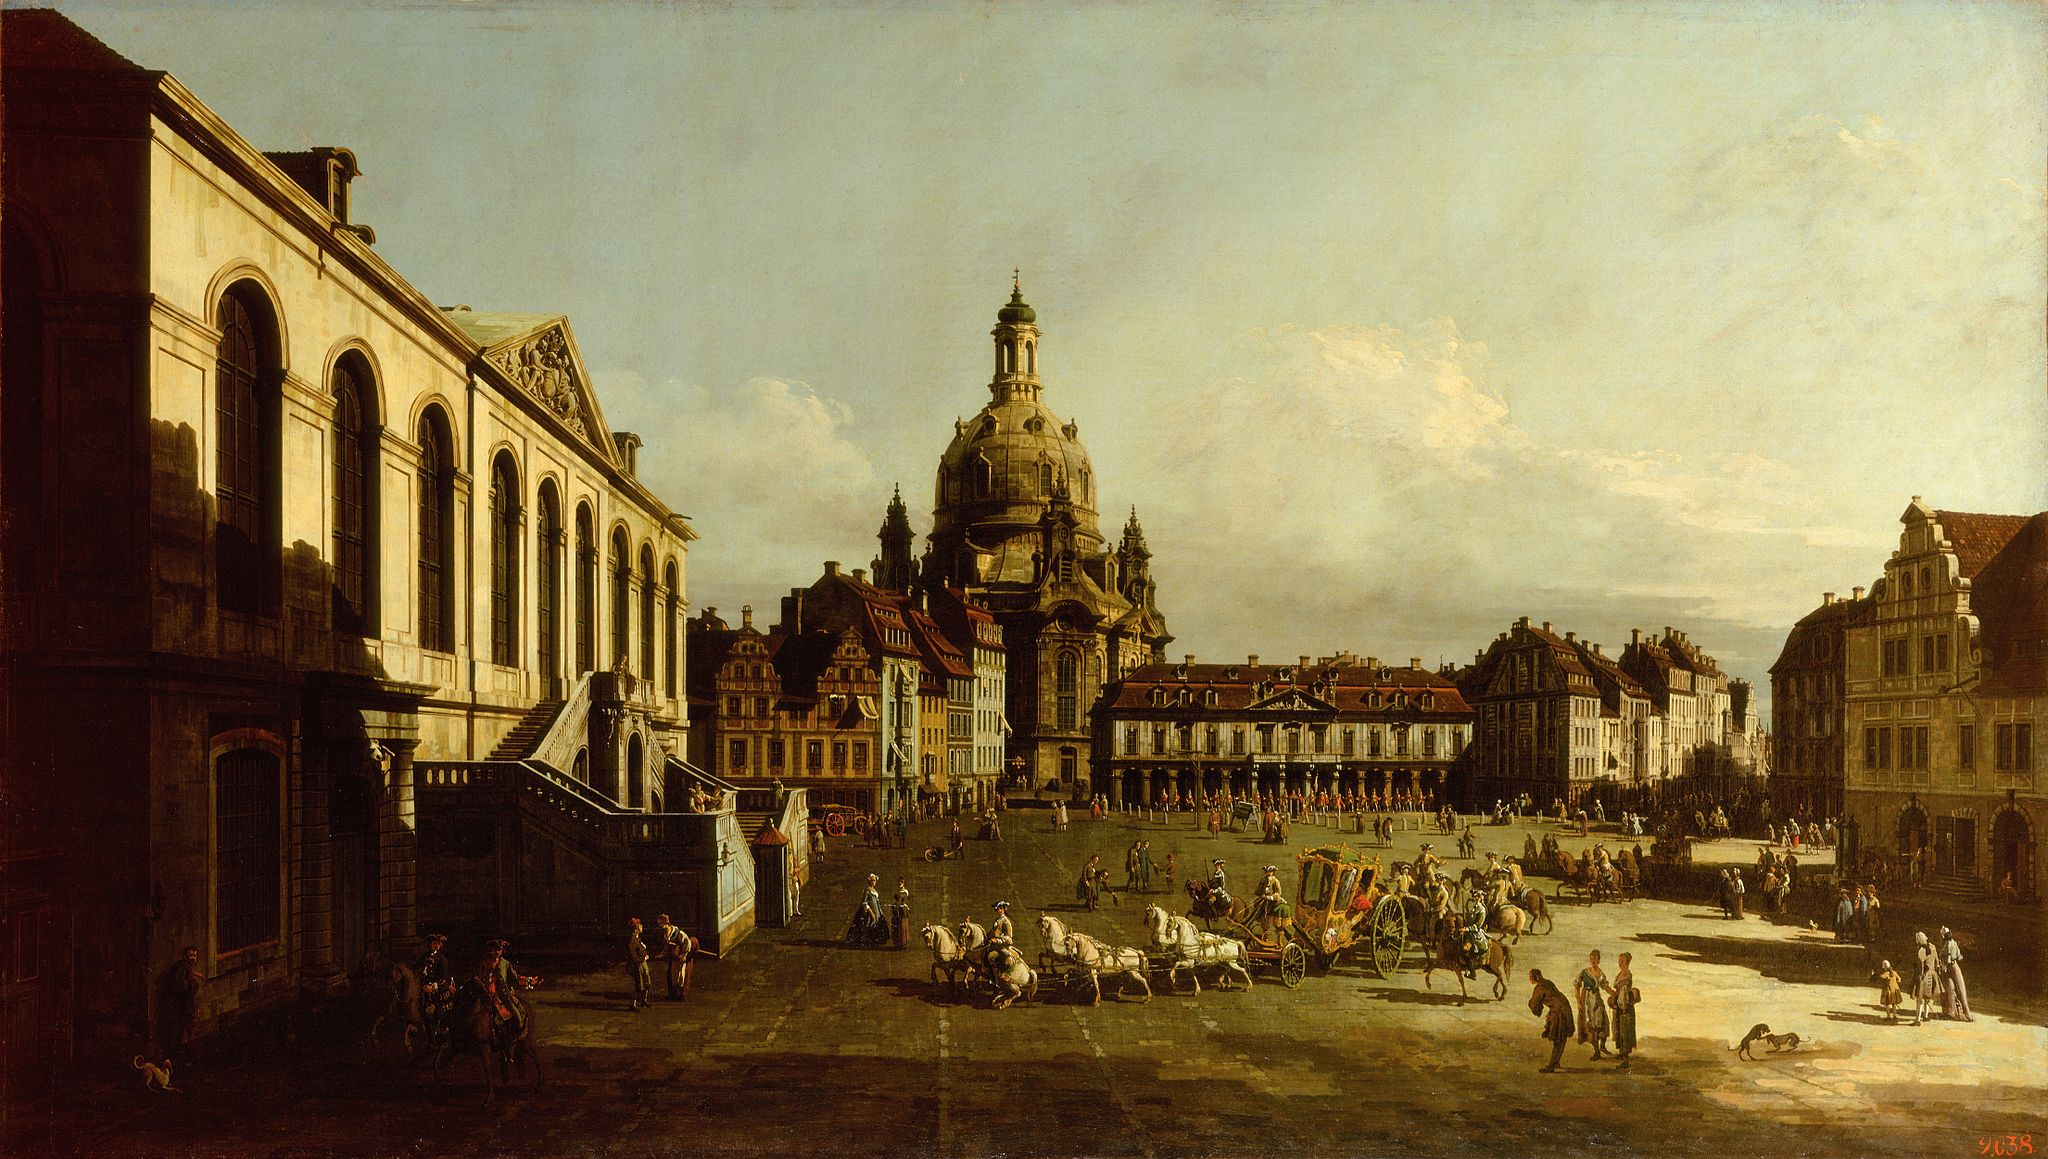 17th century Venetian painter, Bernardo Bellotto, had created 22 paintings of Warsaw's Old Town during his stint as the official court painter